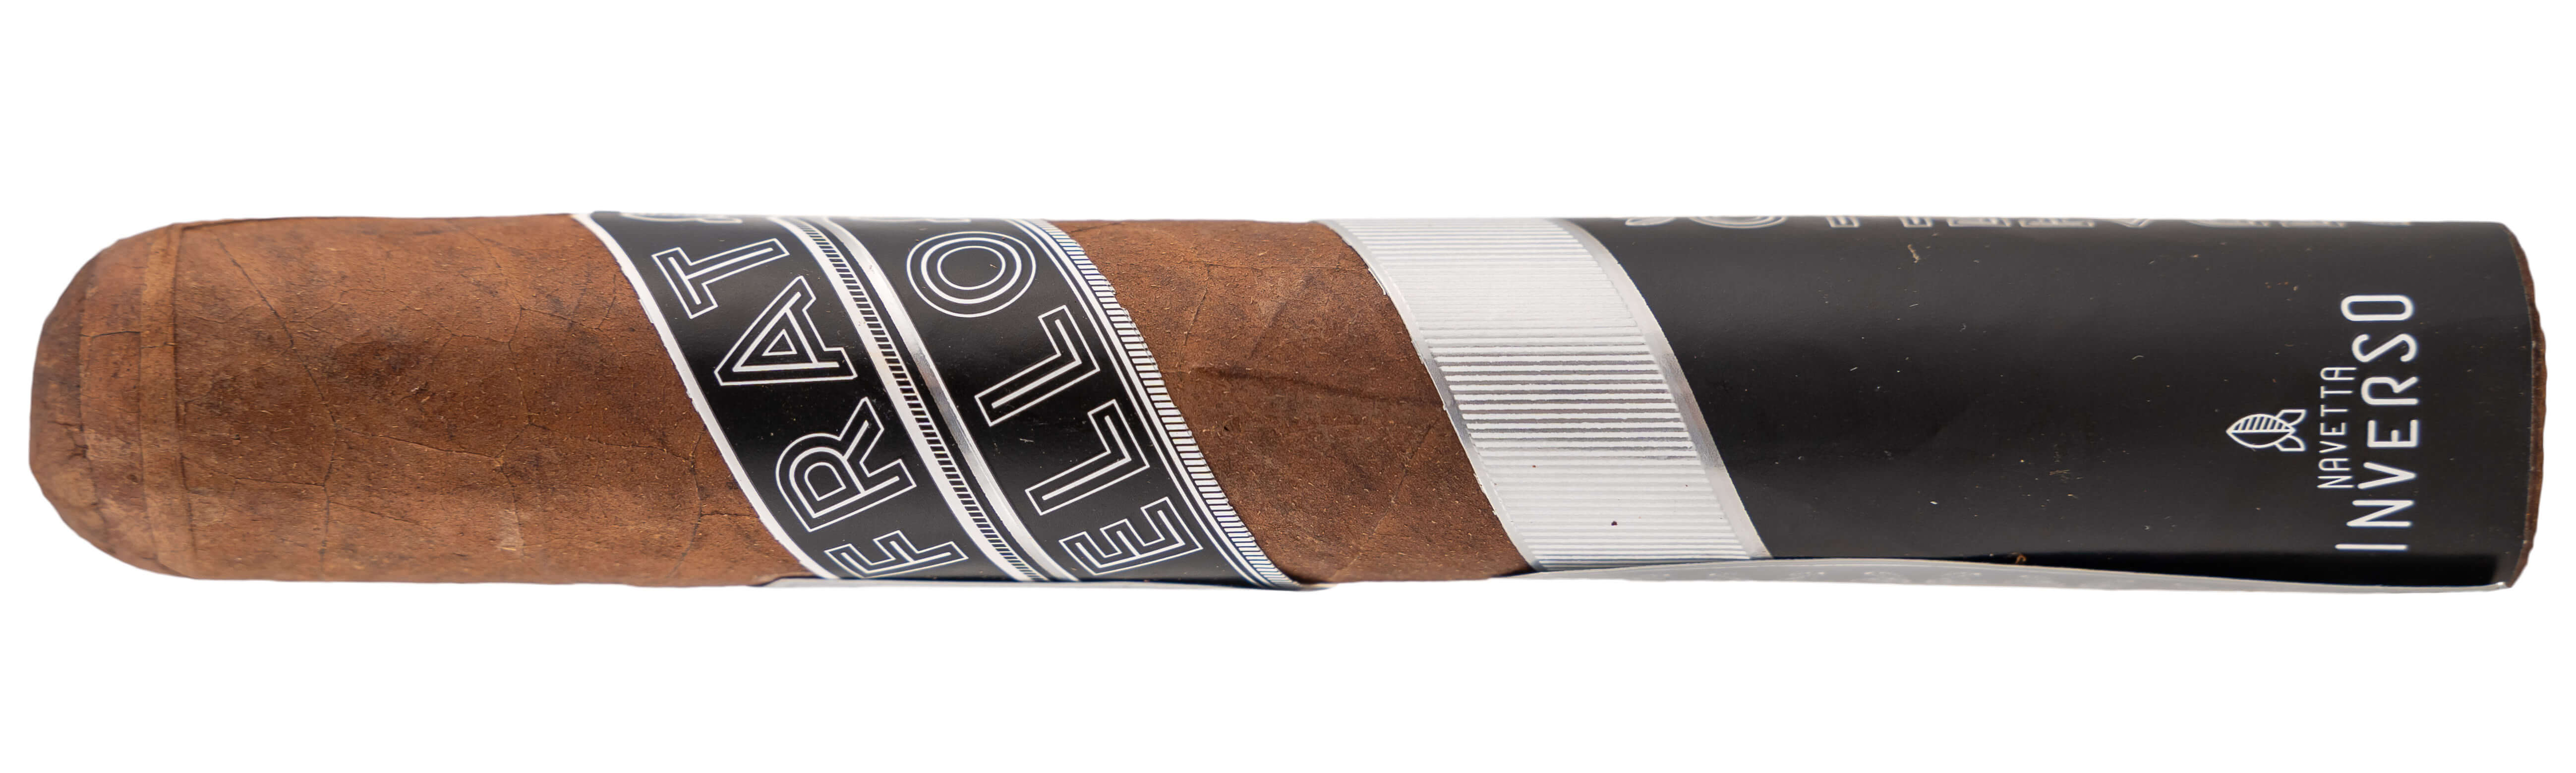 Blind Cigar Review: Fratello | Navetta Inverso Robusto